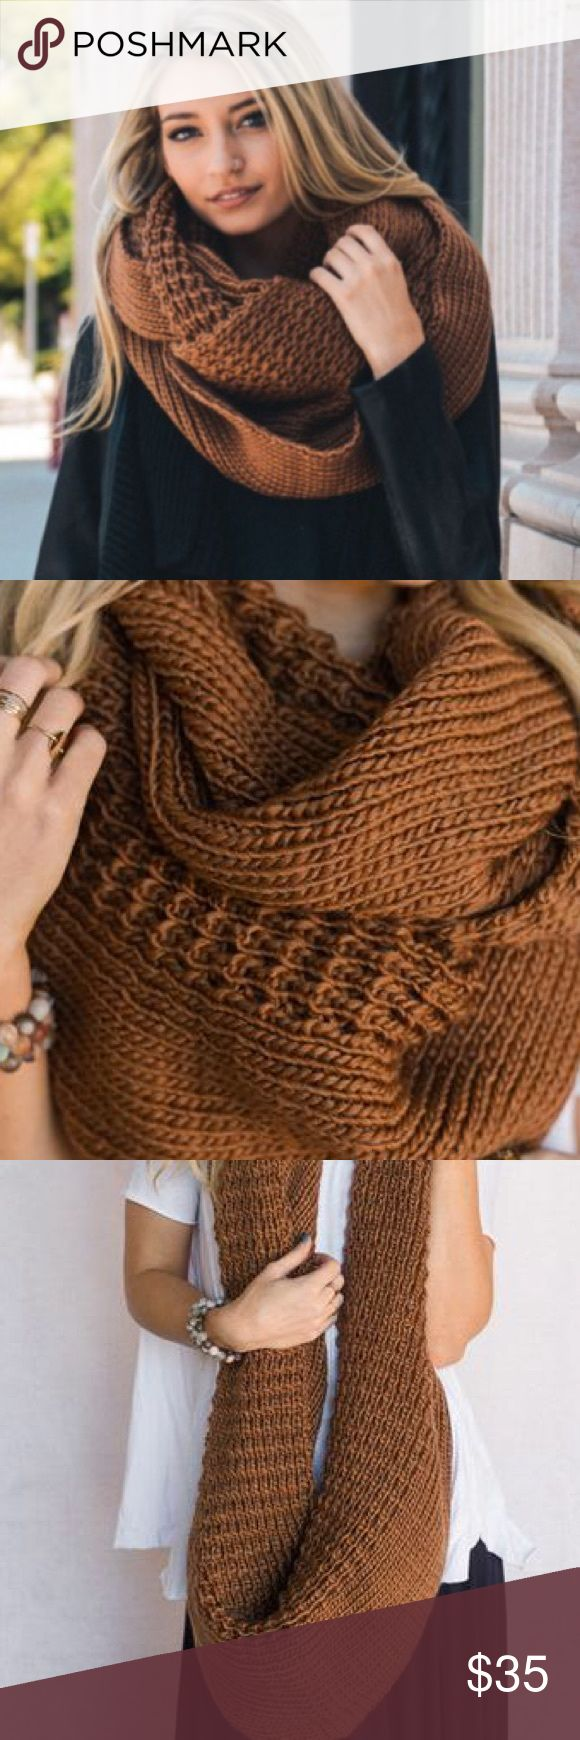 """XL Camel Knit Scarf Huge oversized knitted infinity scarf is a MUST Have! So pretty and soft! Mocha camel brown  Acrylic Yarn Oversized Chunky Knit 68""""x 24"""" Accessories Scarves & Wraps"""